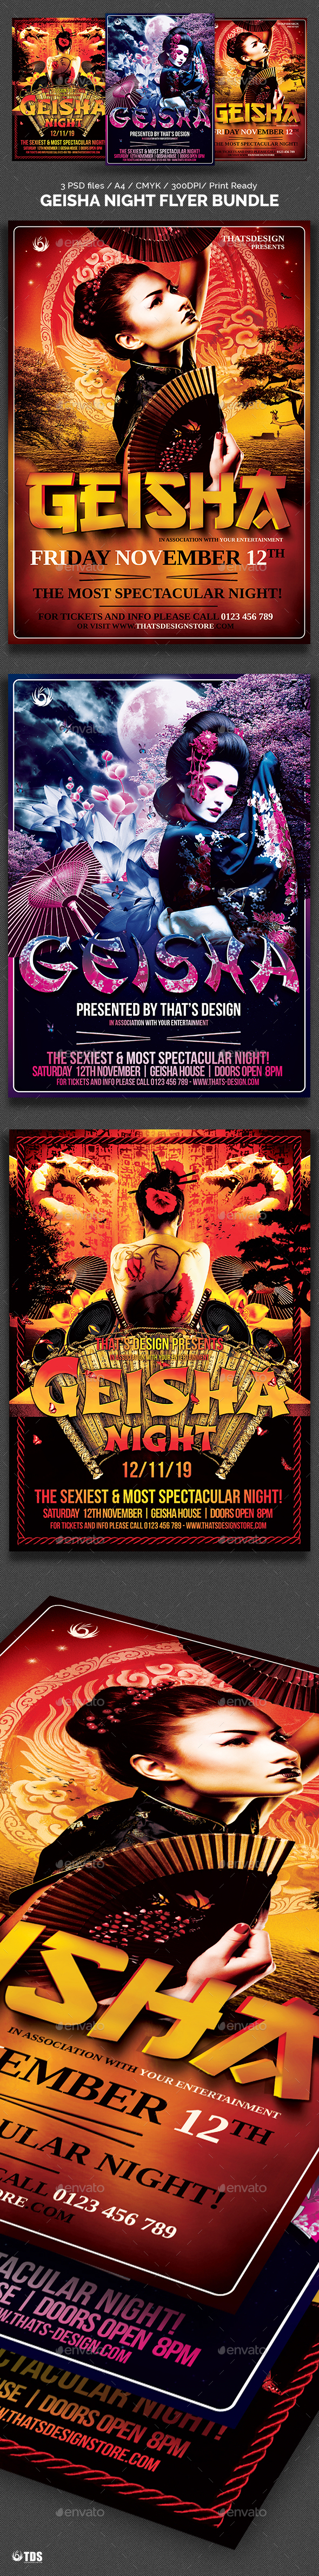 Geisha Night Flyer Bundle - Clubs & Parties Events